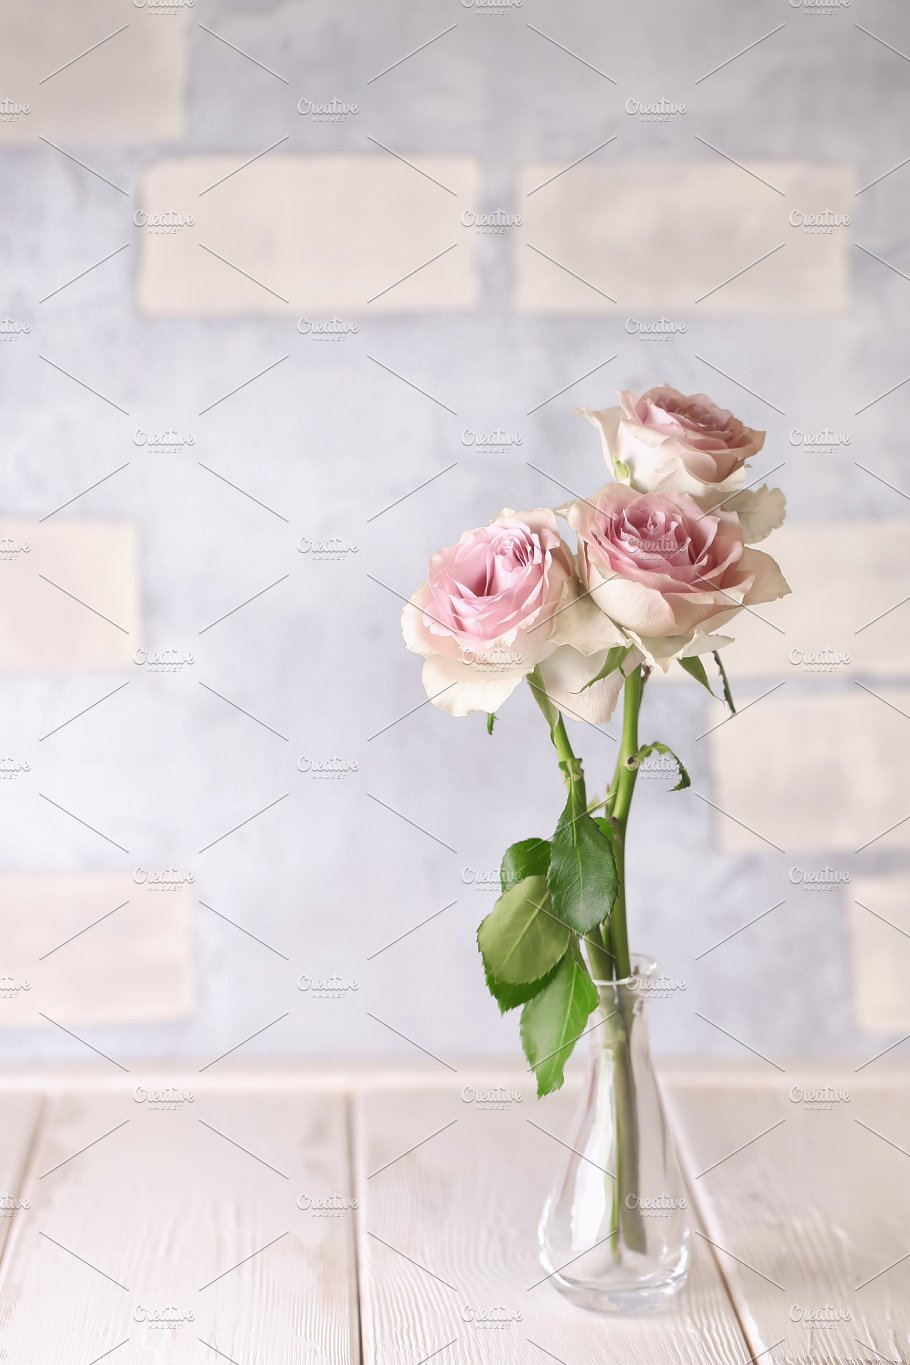 Delicate pink roses in vintage shabby chic delicate pink roses in vintage shabby chic izmirmasajfo